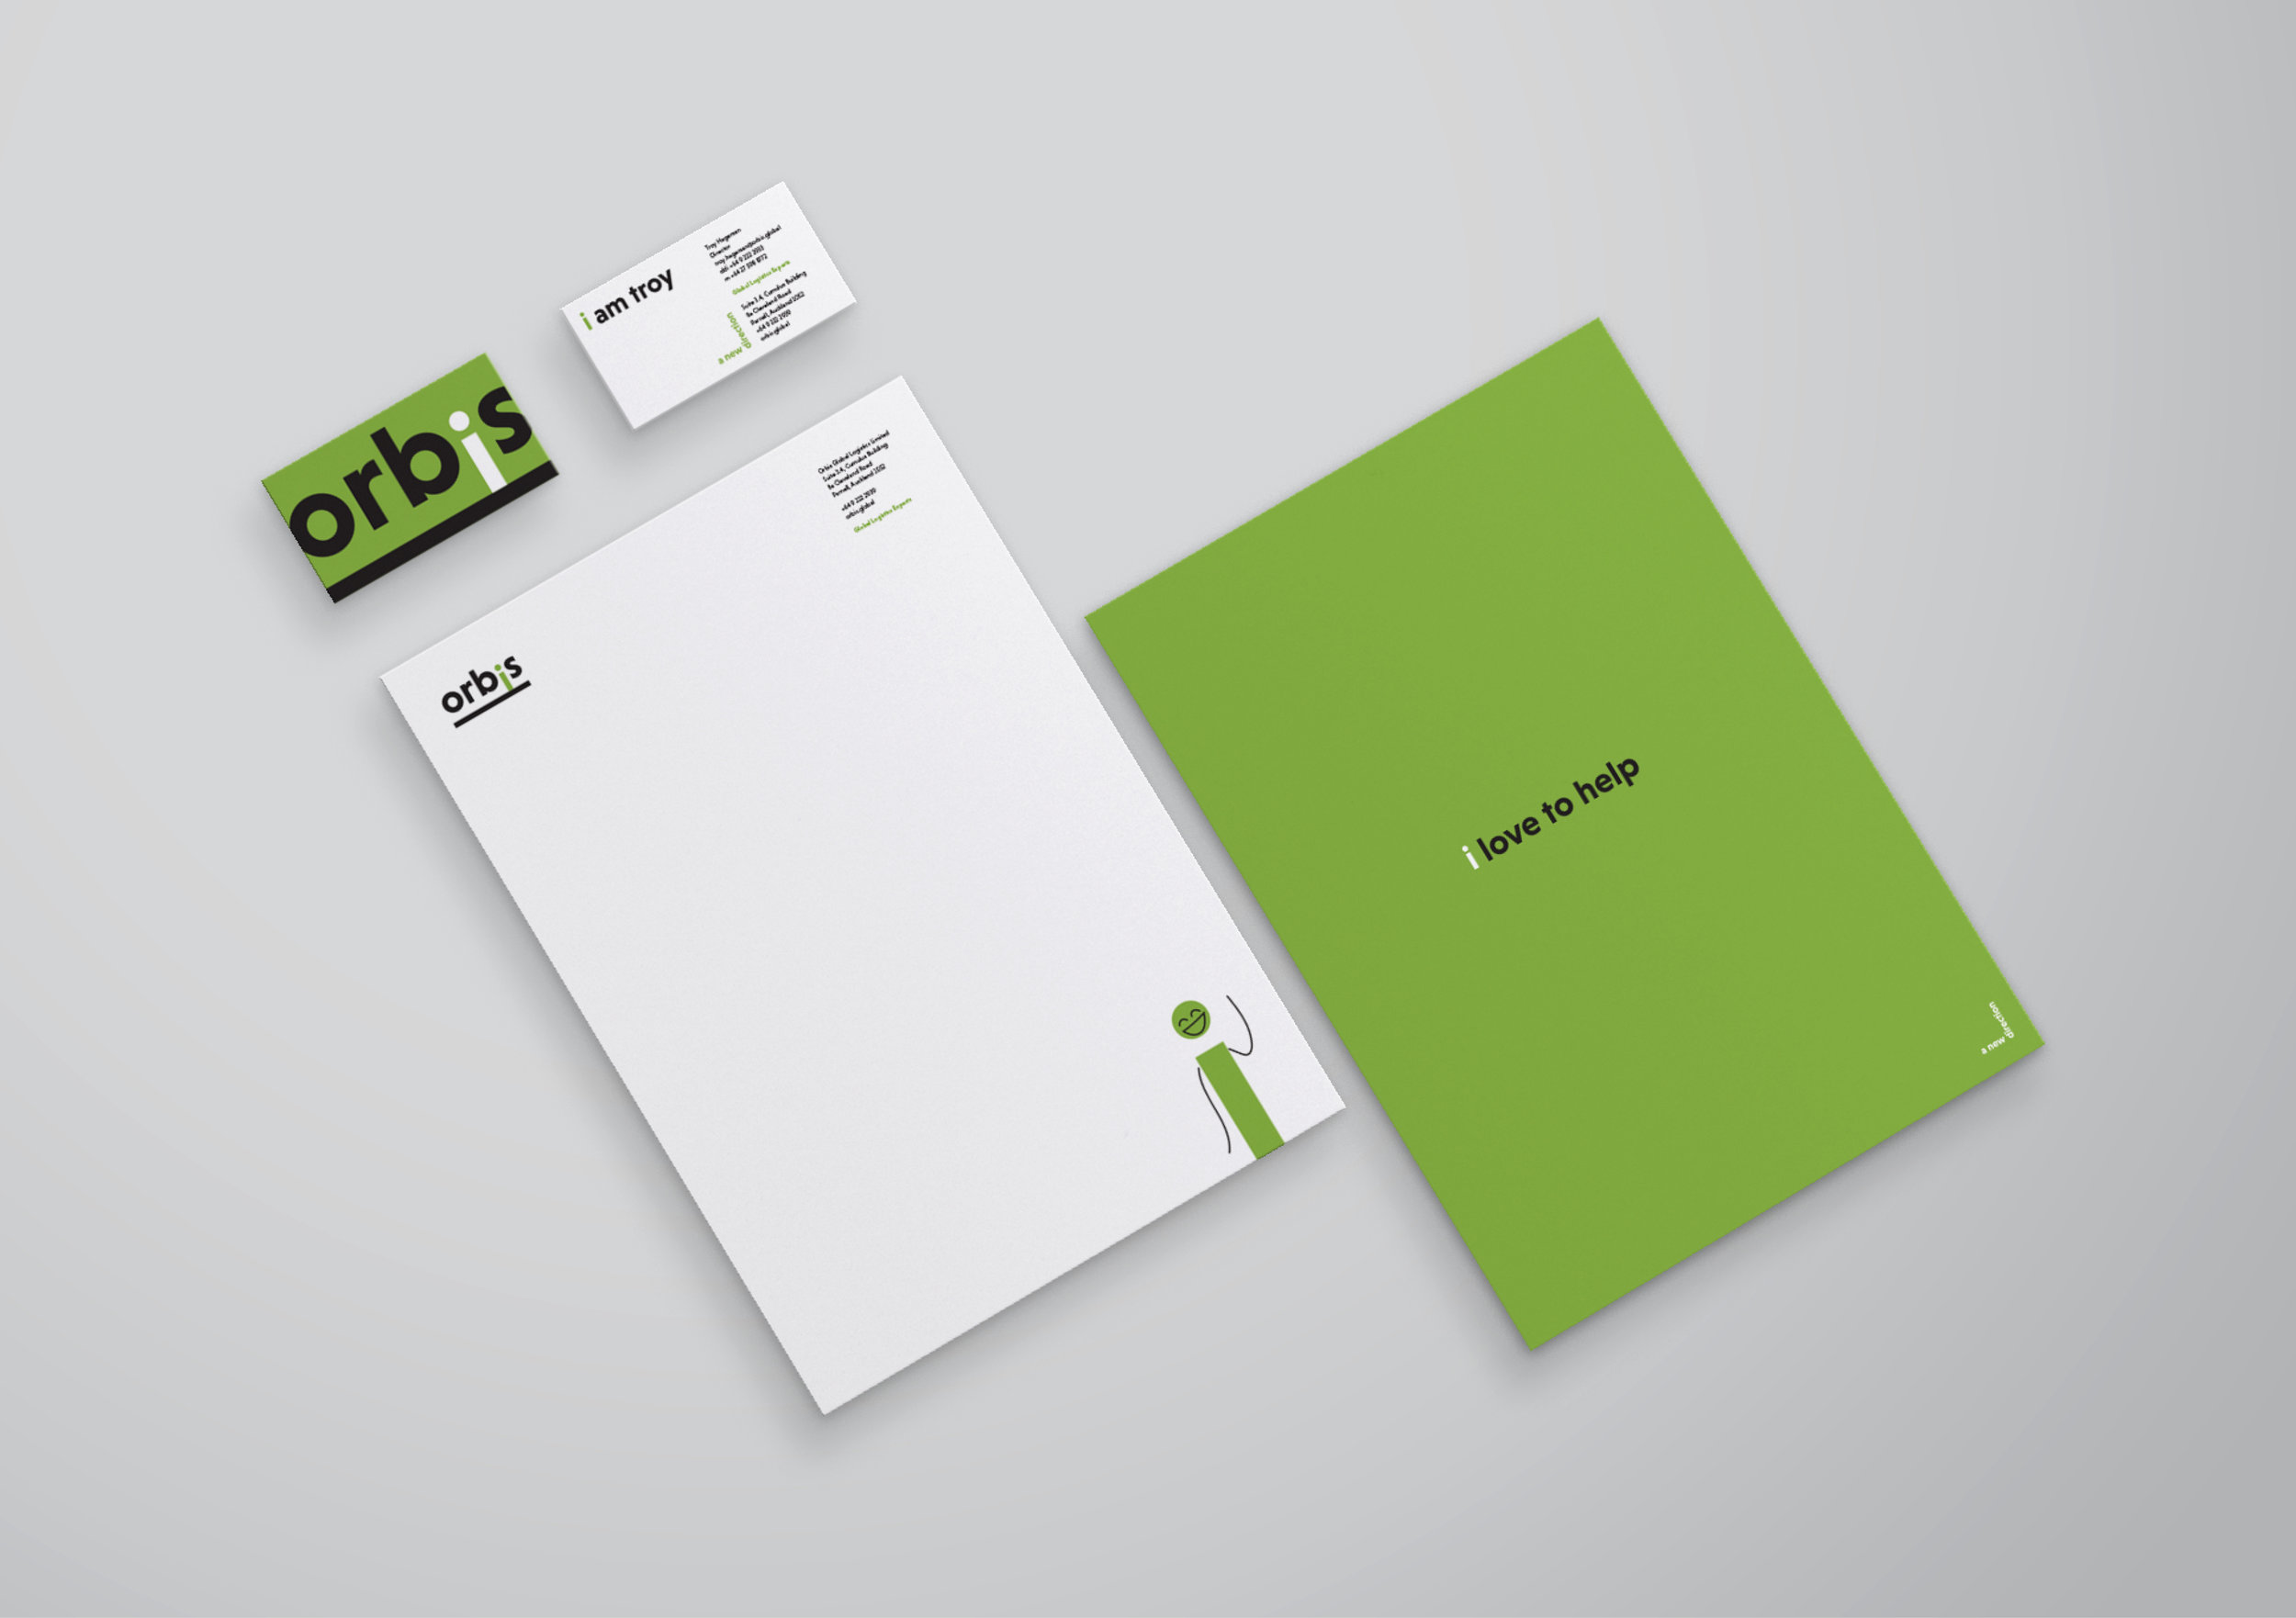 Orbis business stationery